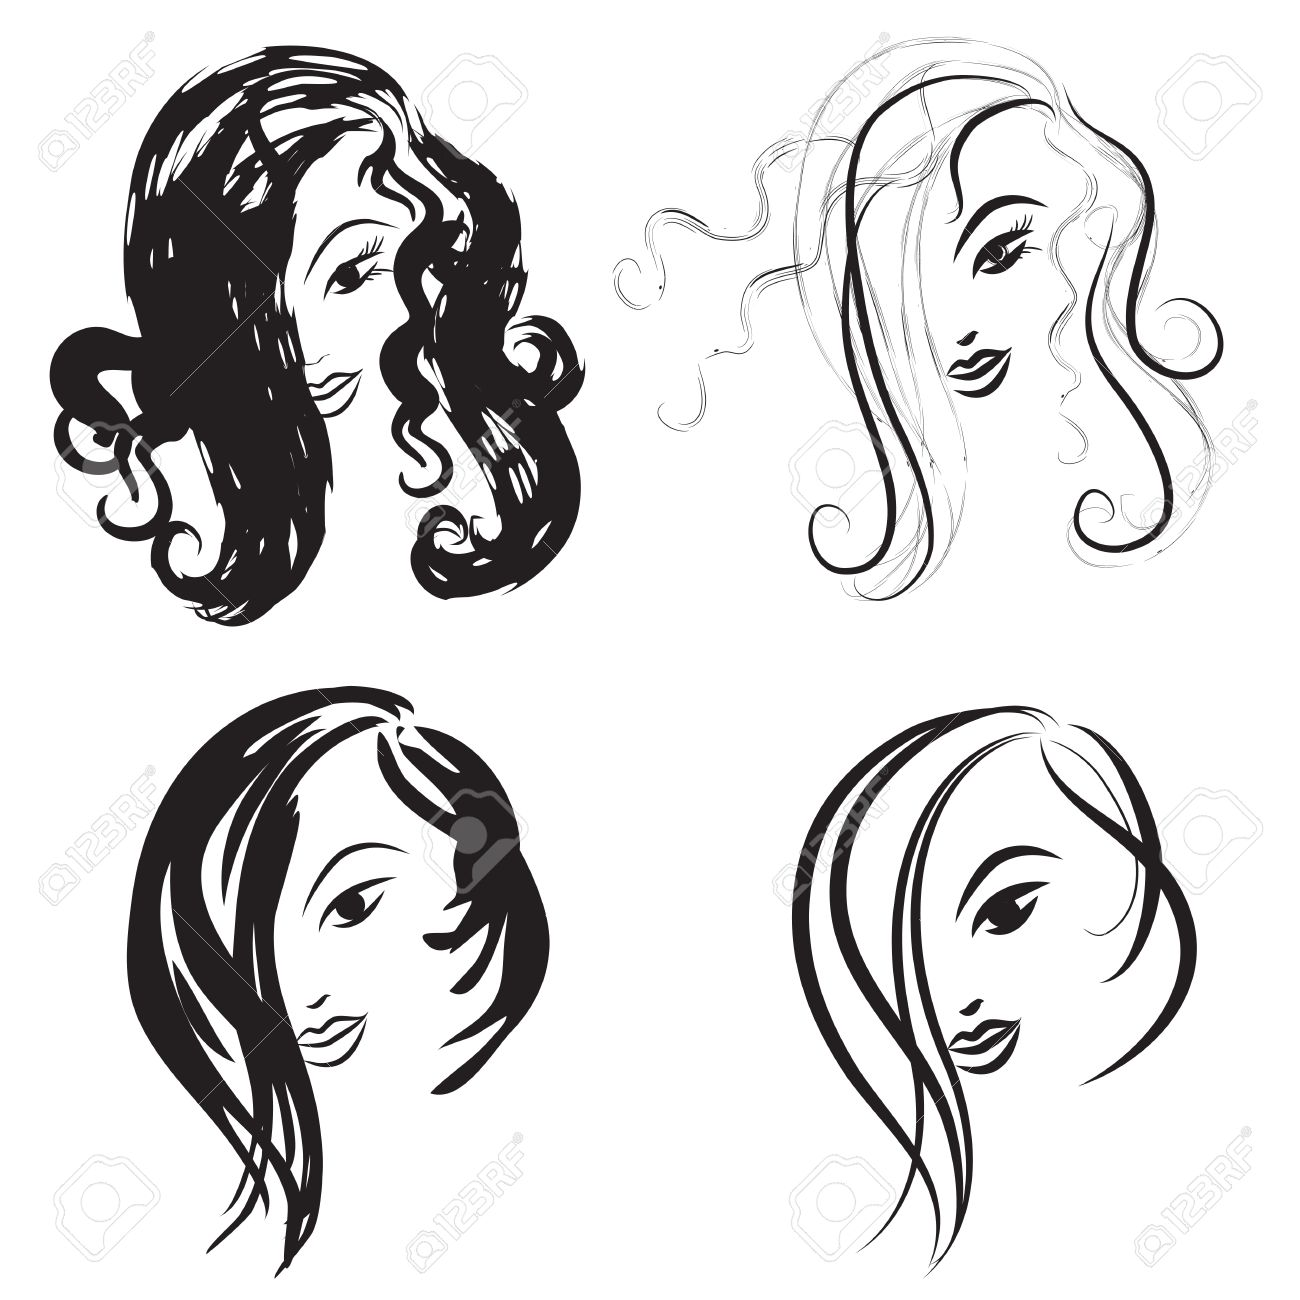 Some Hairstyles For Women Front View Black And White Outline Mode Hand Drawn